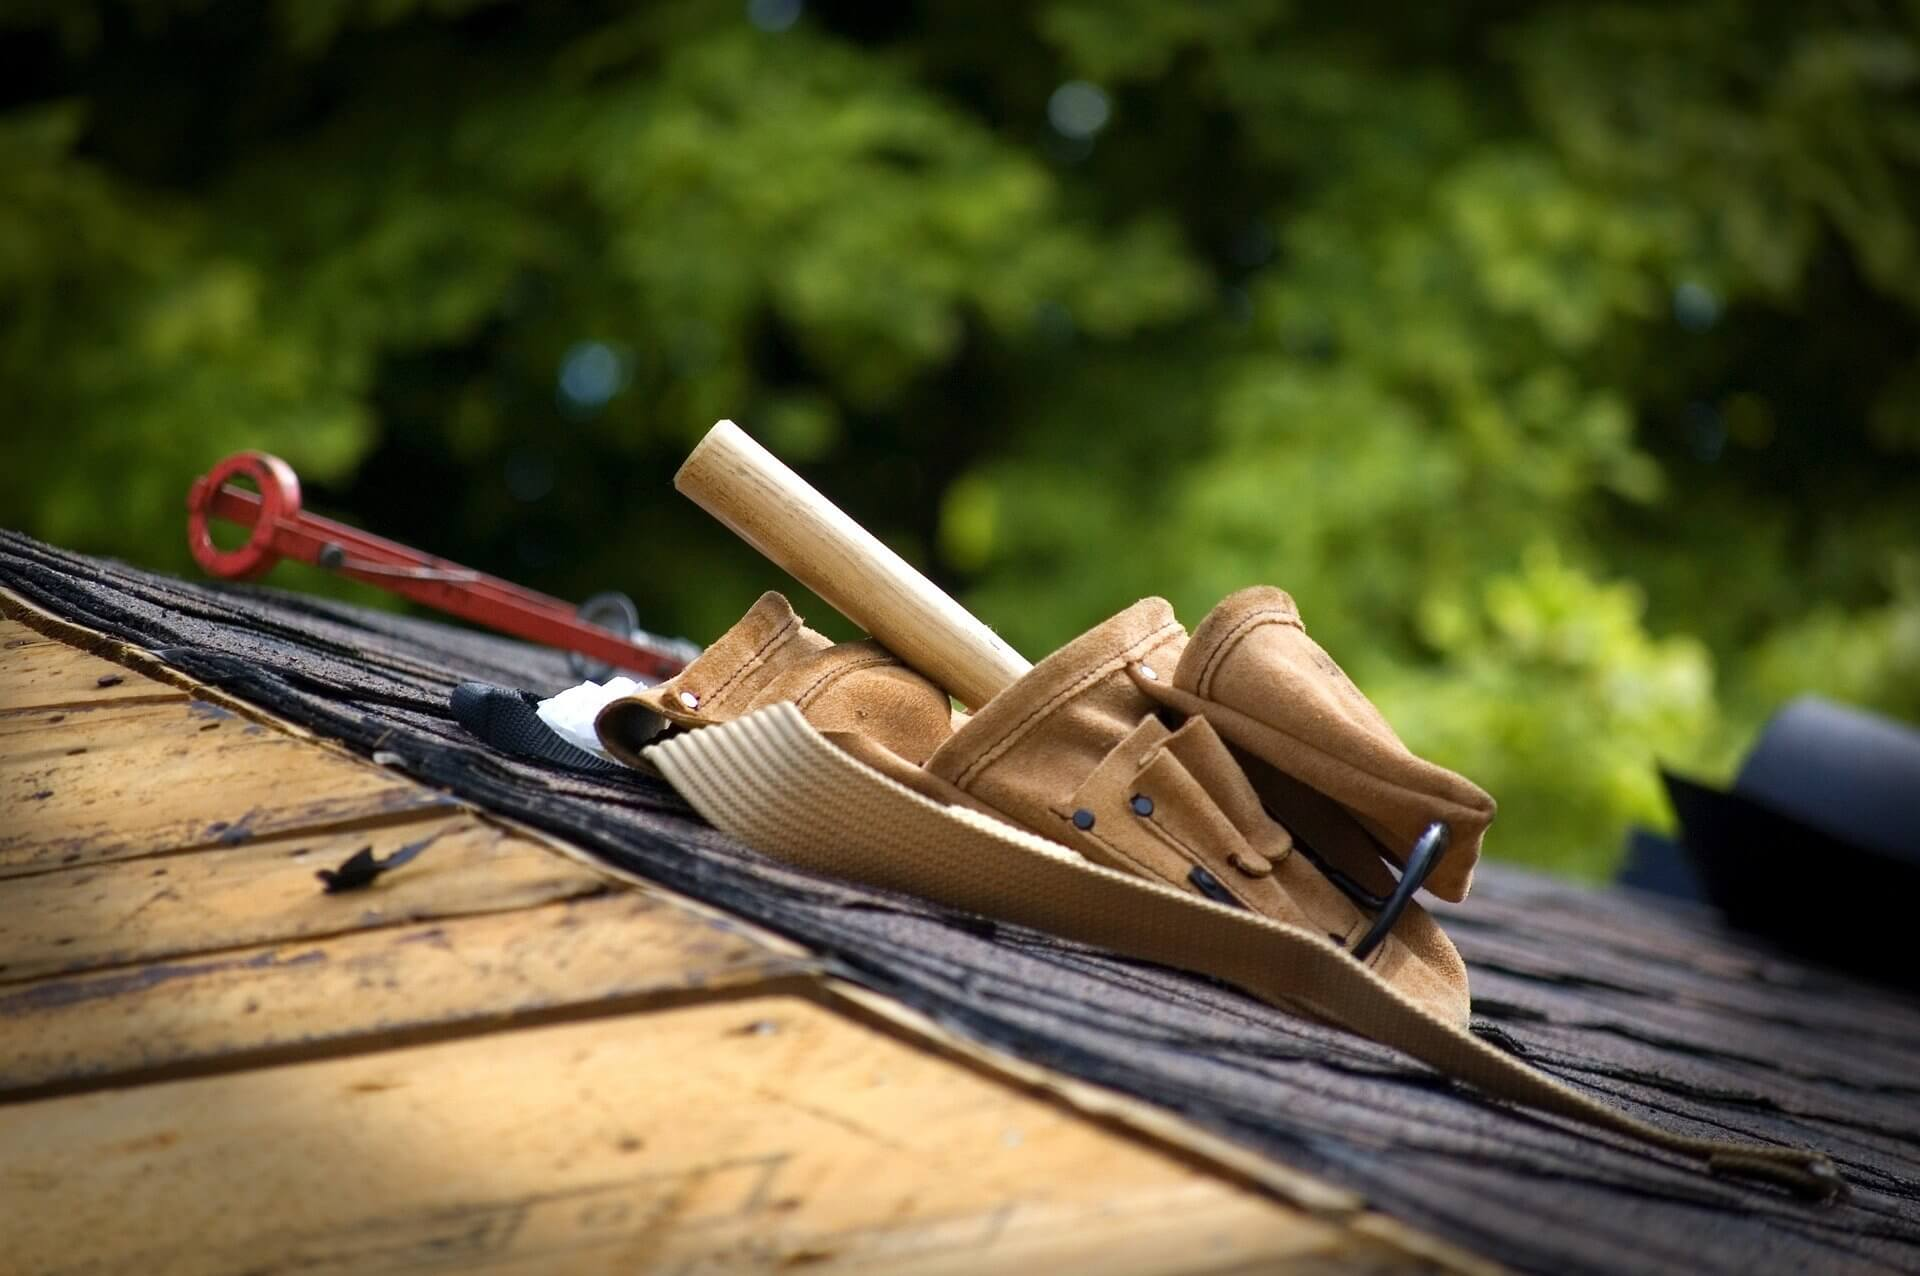 Stock image of a toolbelt on a shingled roof.